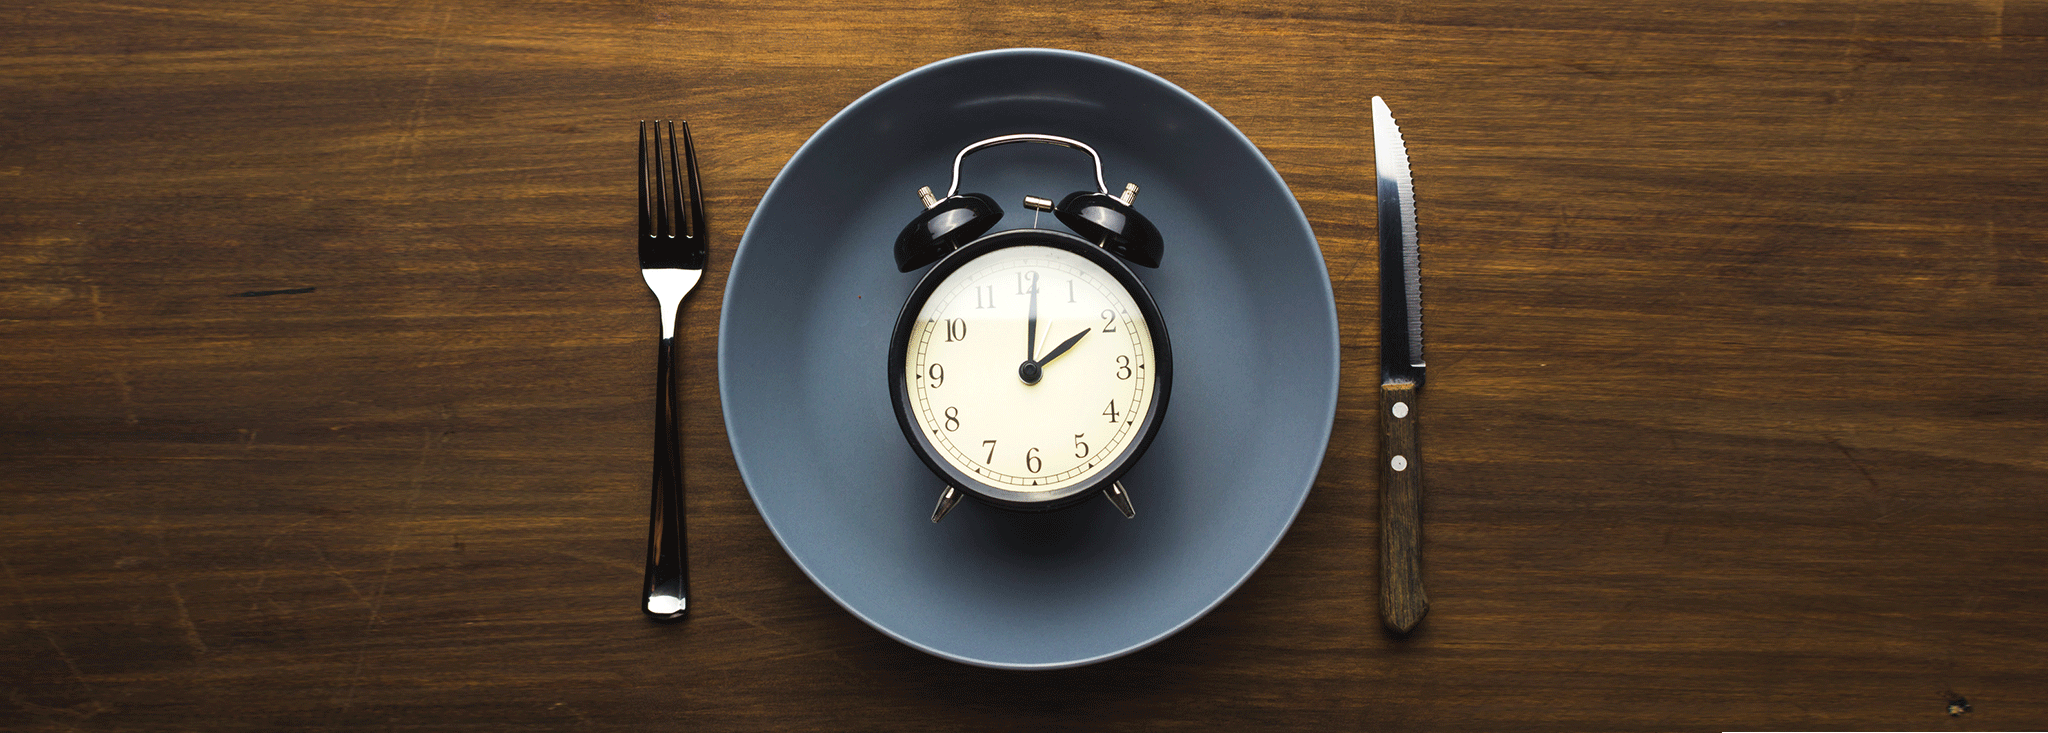 INTERMITTENT FASTING VS DAILY CALORIC RESTRICTION, WHICH IS BETTER?